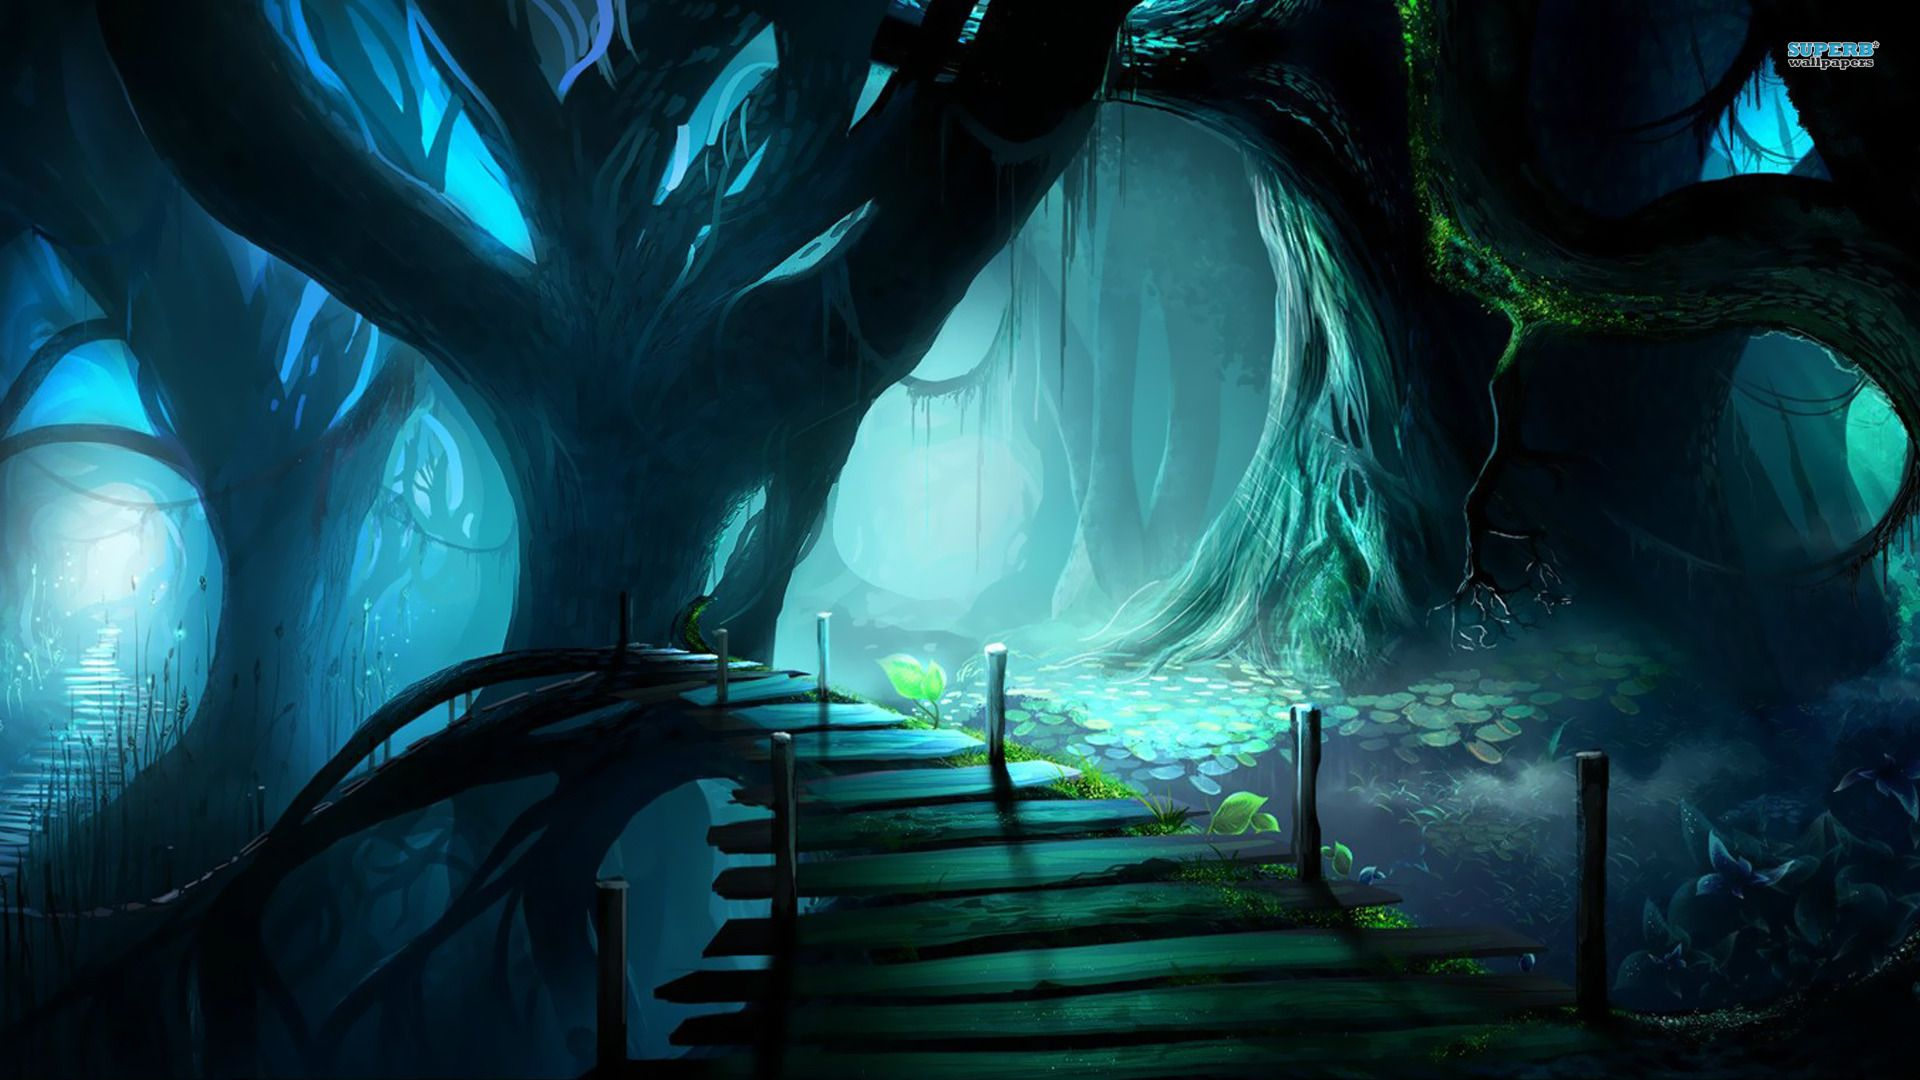 Fantasy Hd Wallpapers Page 17 Fantasy Forest Forest Cartoon Scary Wallpaper